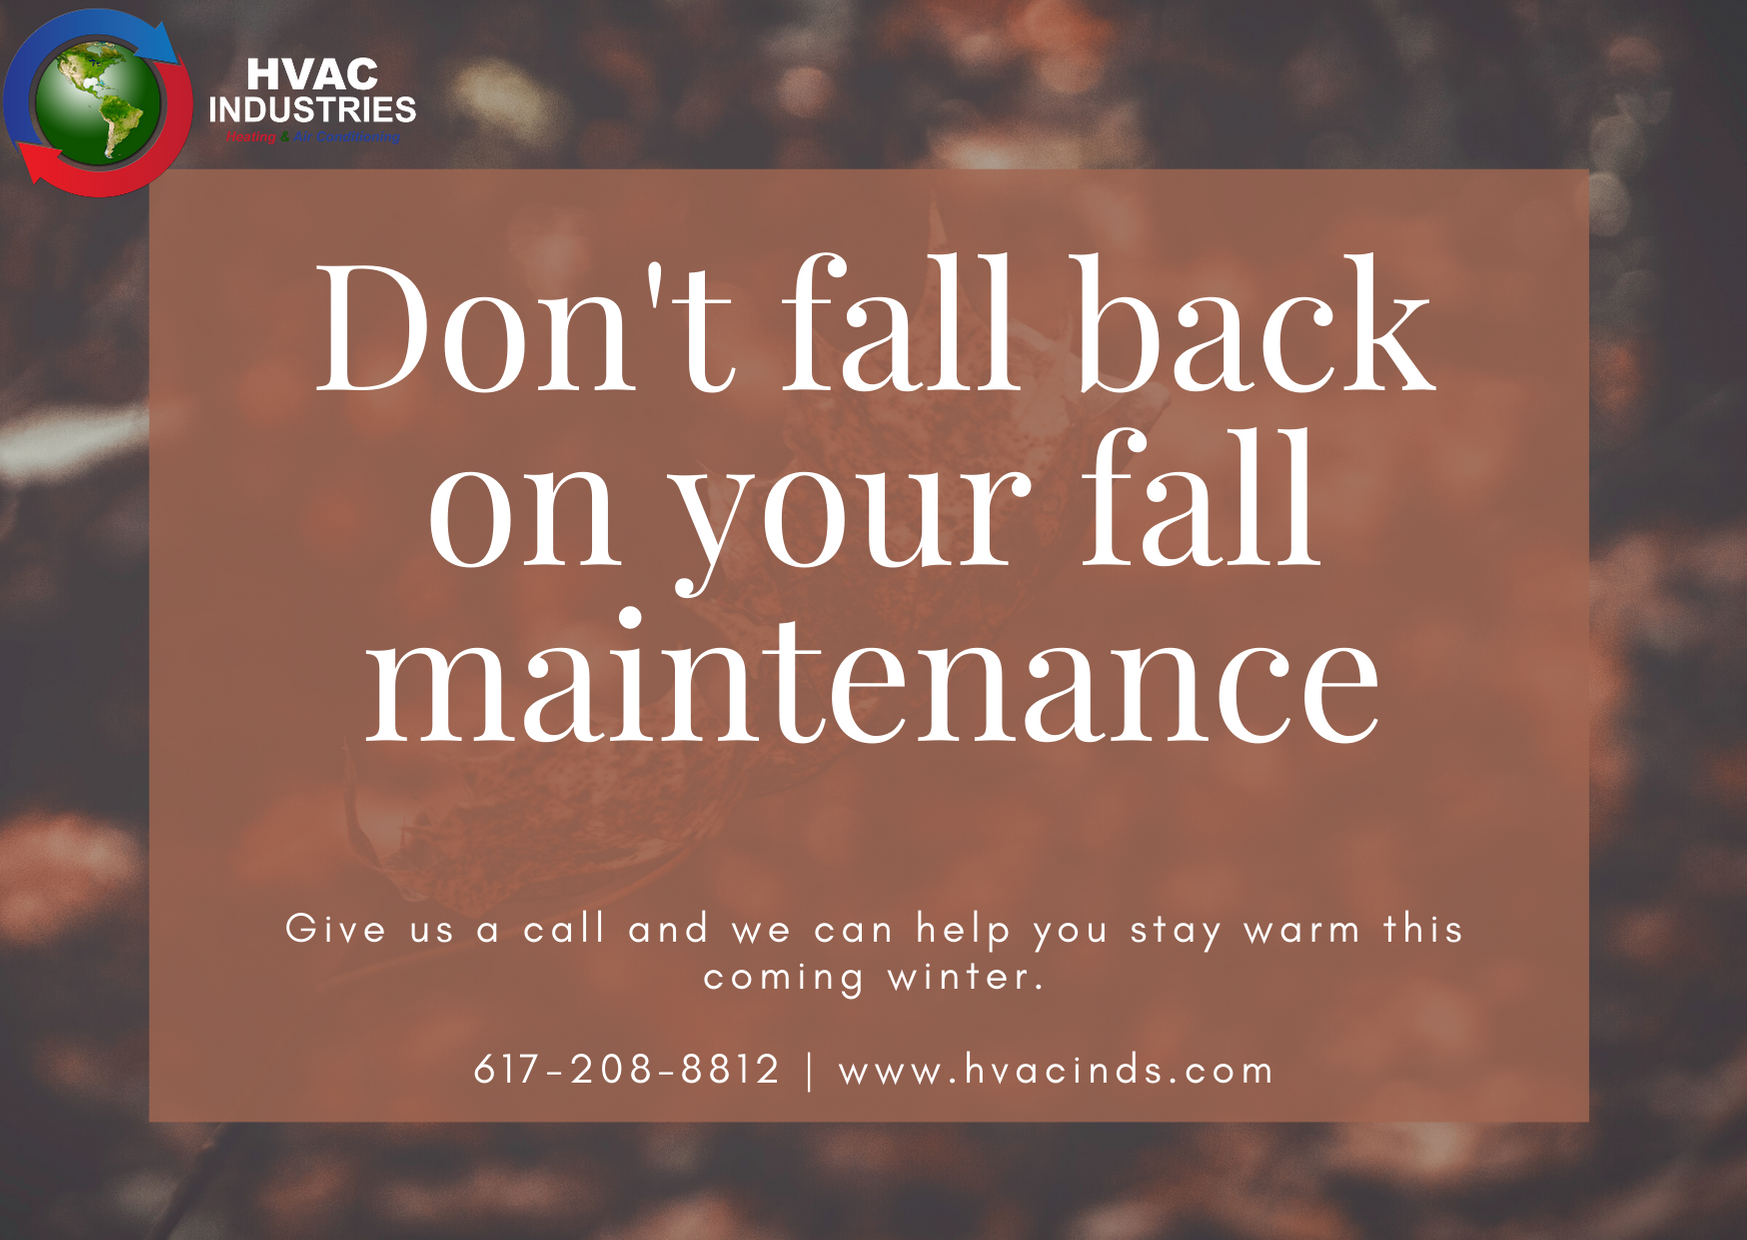 Don't fall back on your fall maintenance